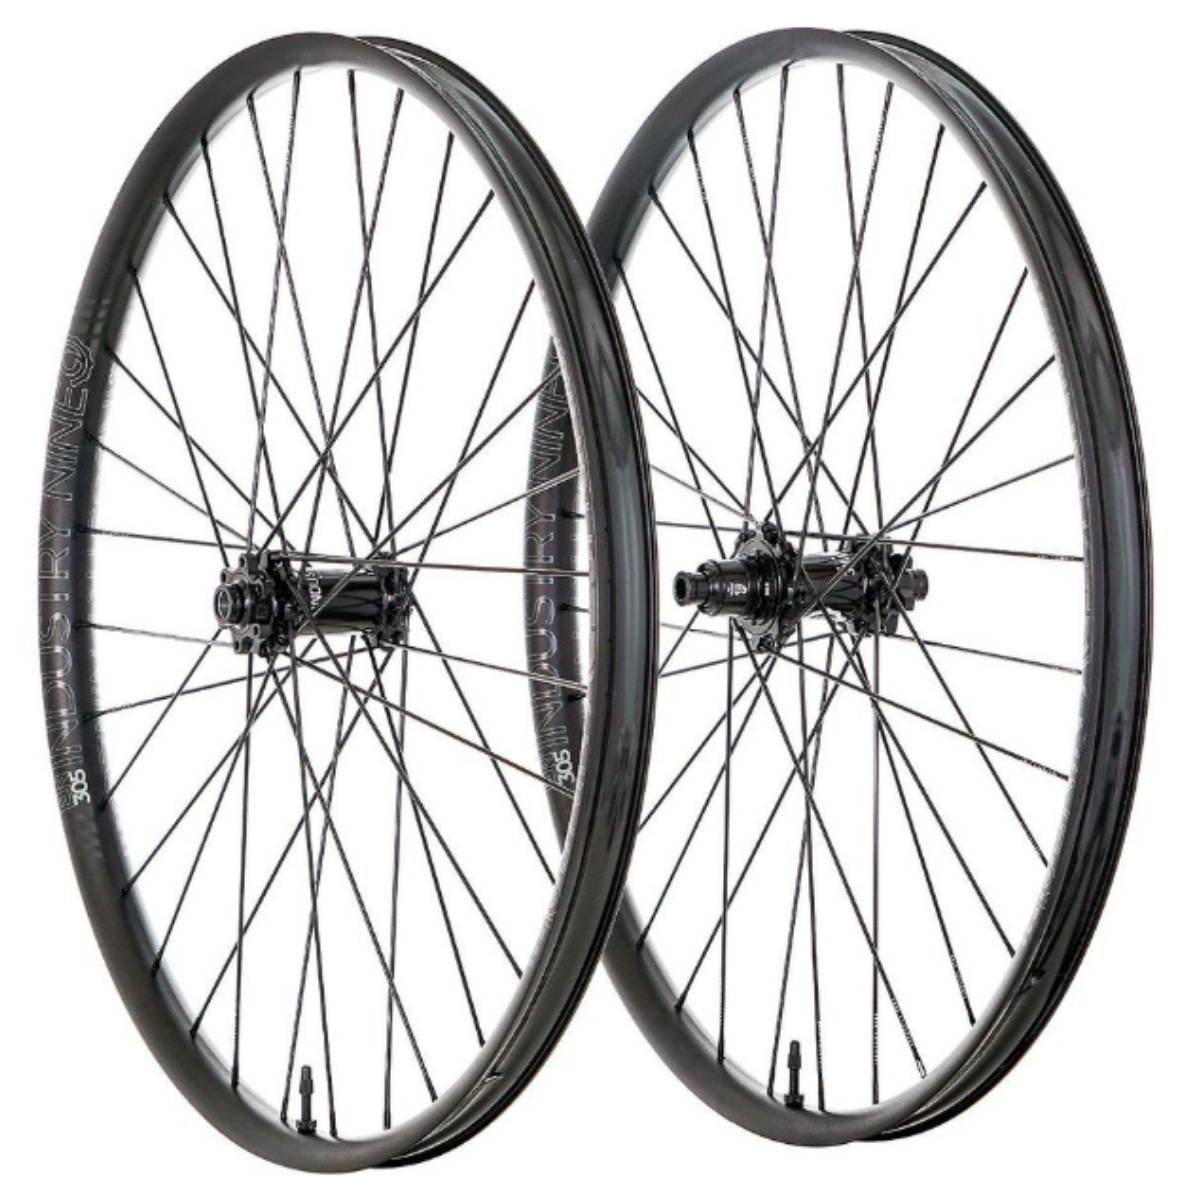 ROUES INDUSTRY 9 HYDRA ENDURO S 29 15X110/12X148  28 RAYONS 6 BOLTS XD NOIR